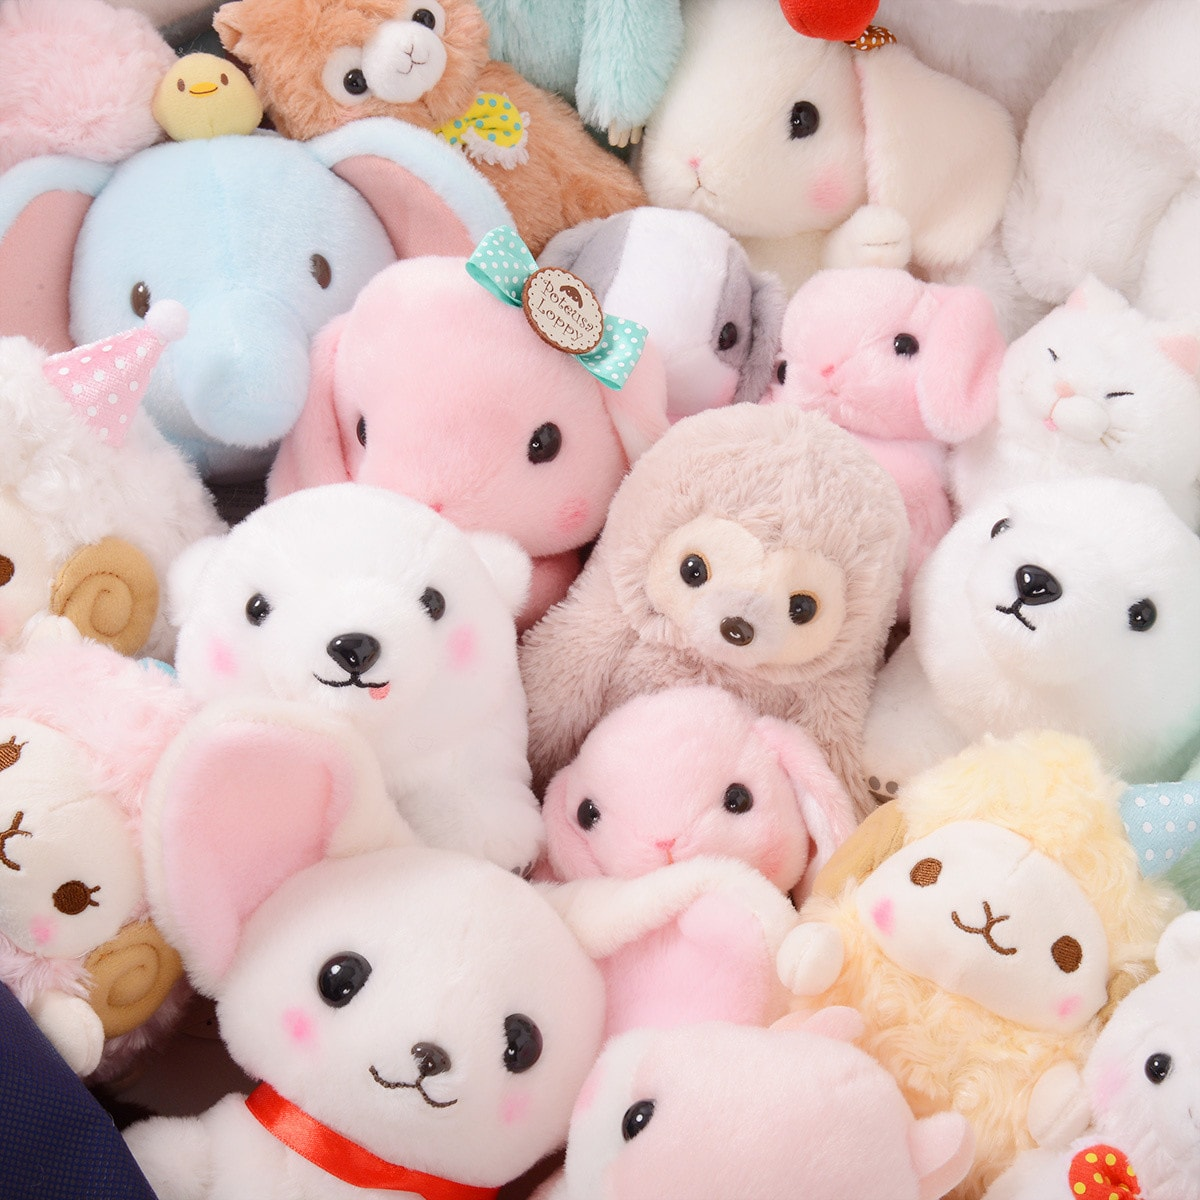 Teddy bear and plushes